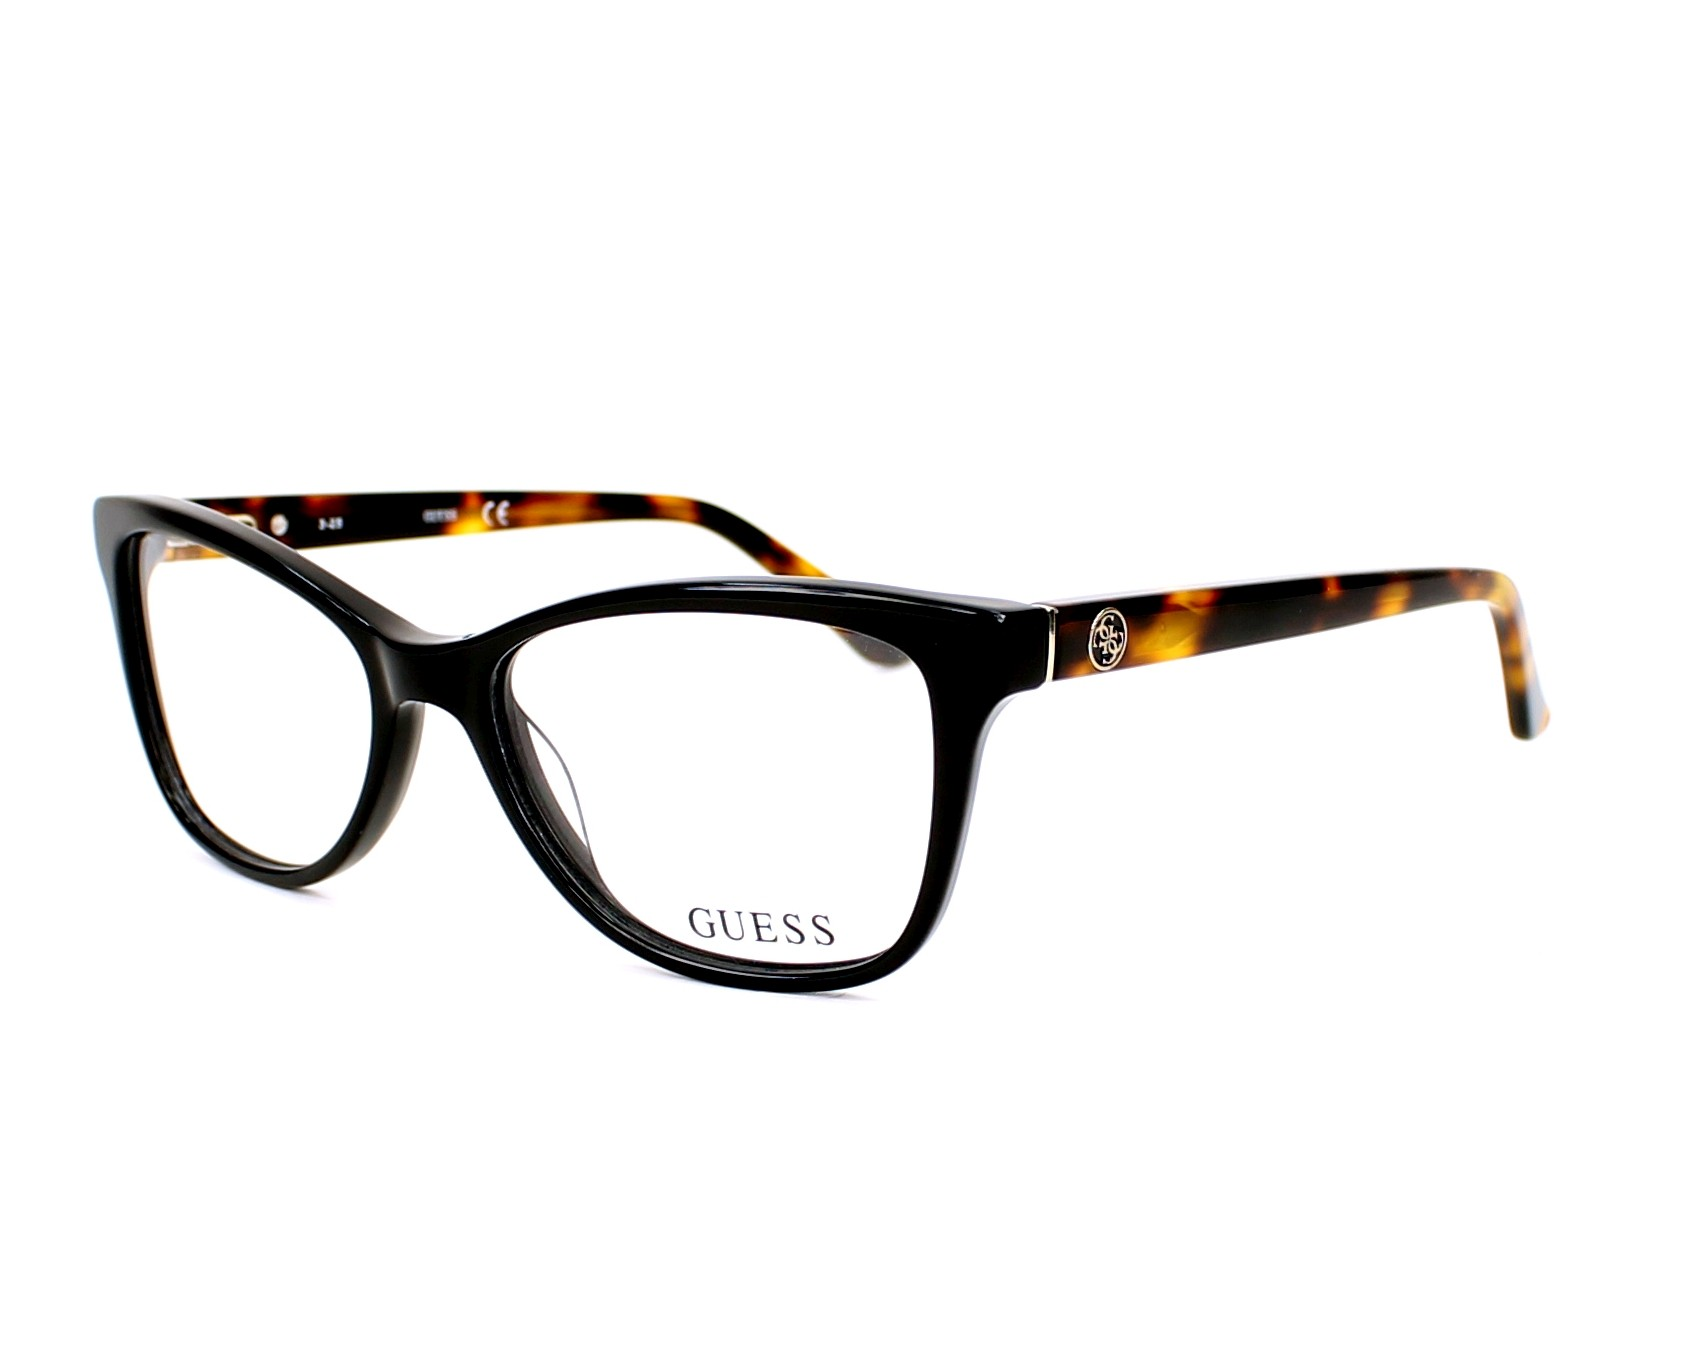 Guess Eyeglasses Black GU-2536 001 - Visionet US